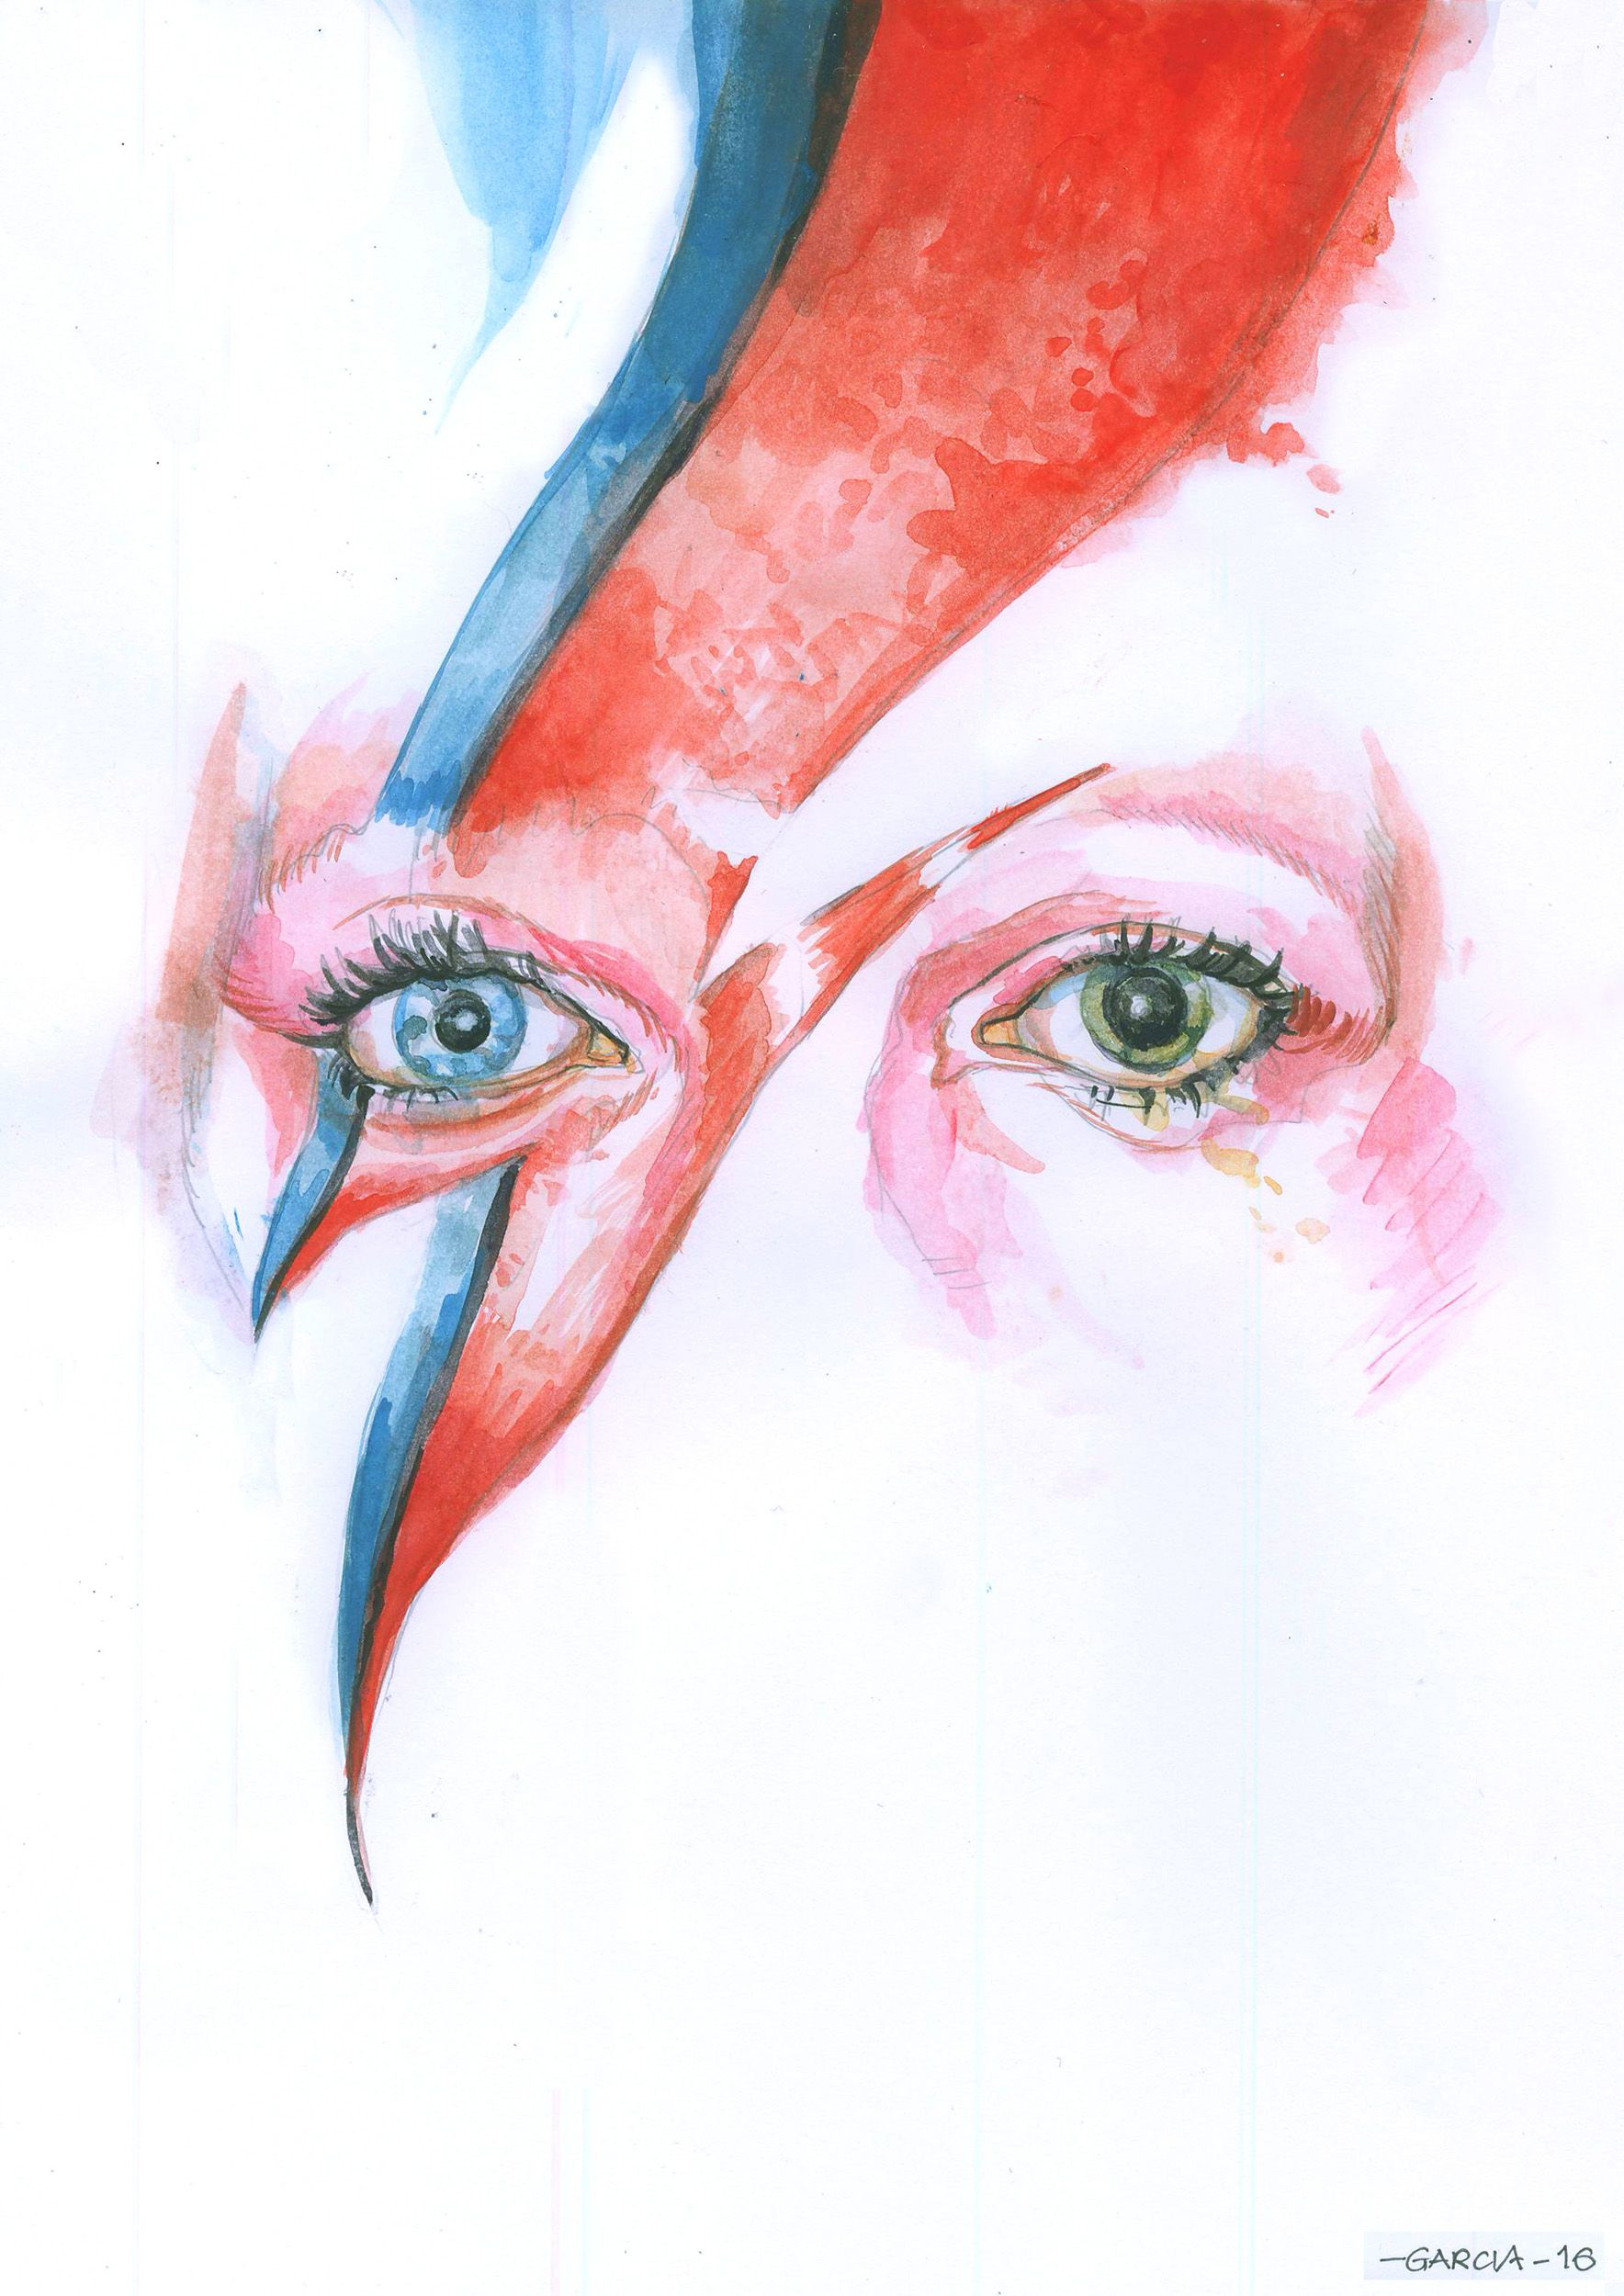 art by daniel garcia david bowie illustration watercolor rock eyes music idols and. Black Bedroom Furniture Sets. Home Design Ideas